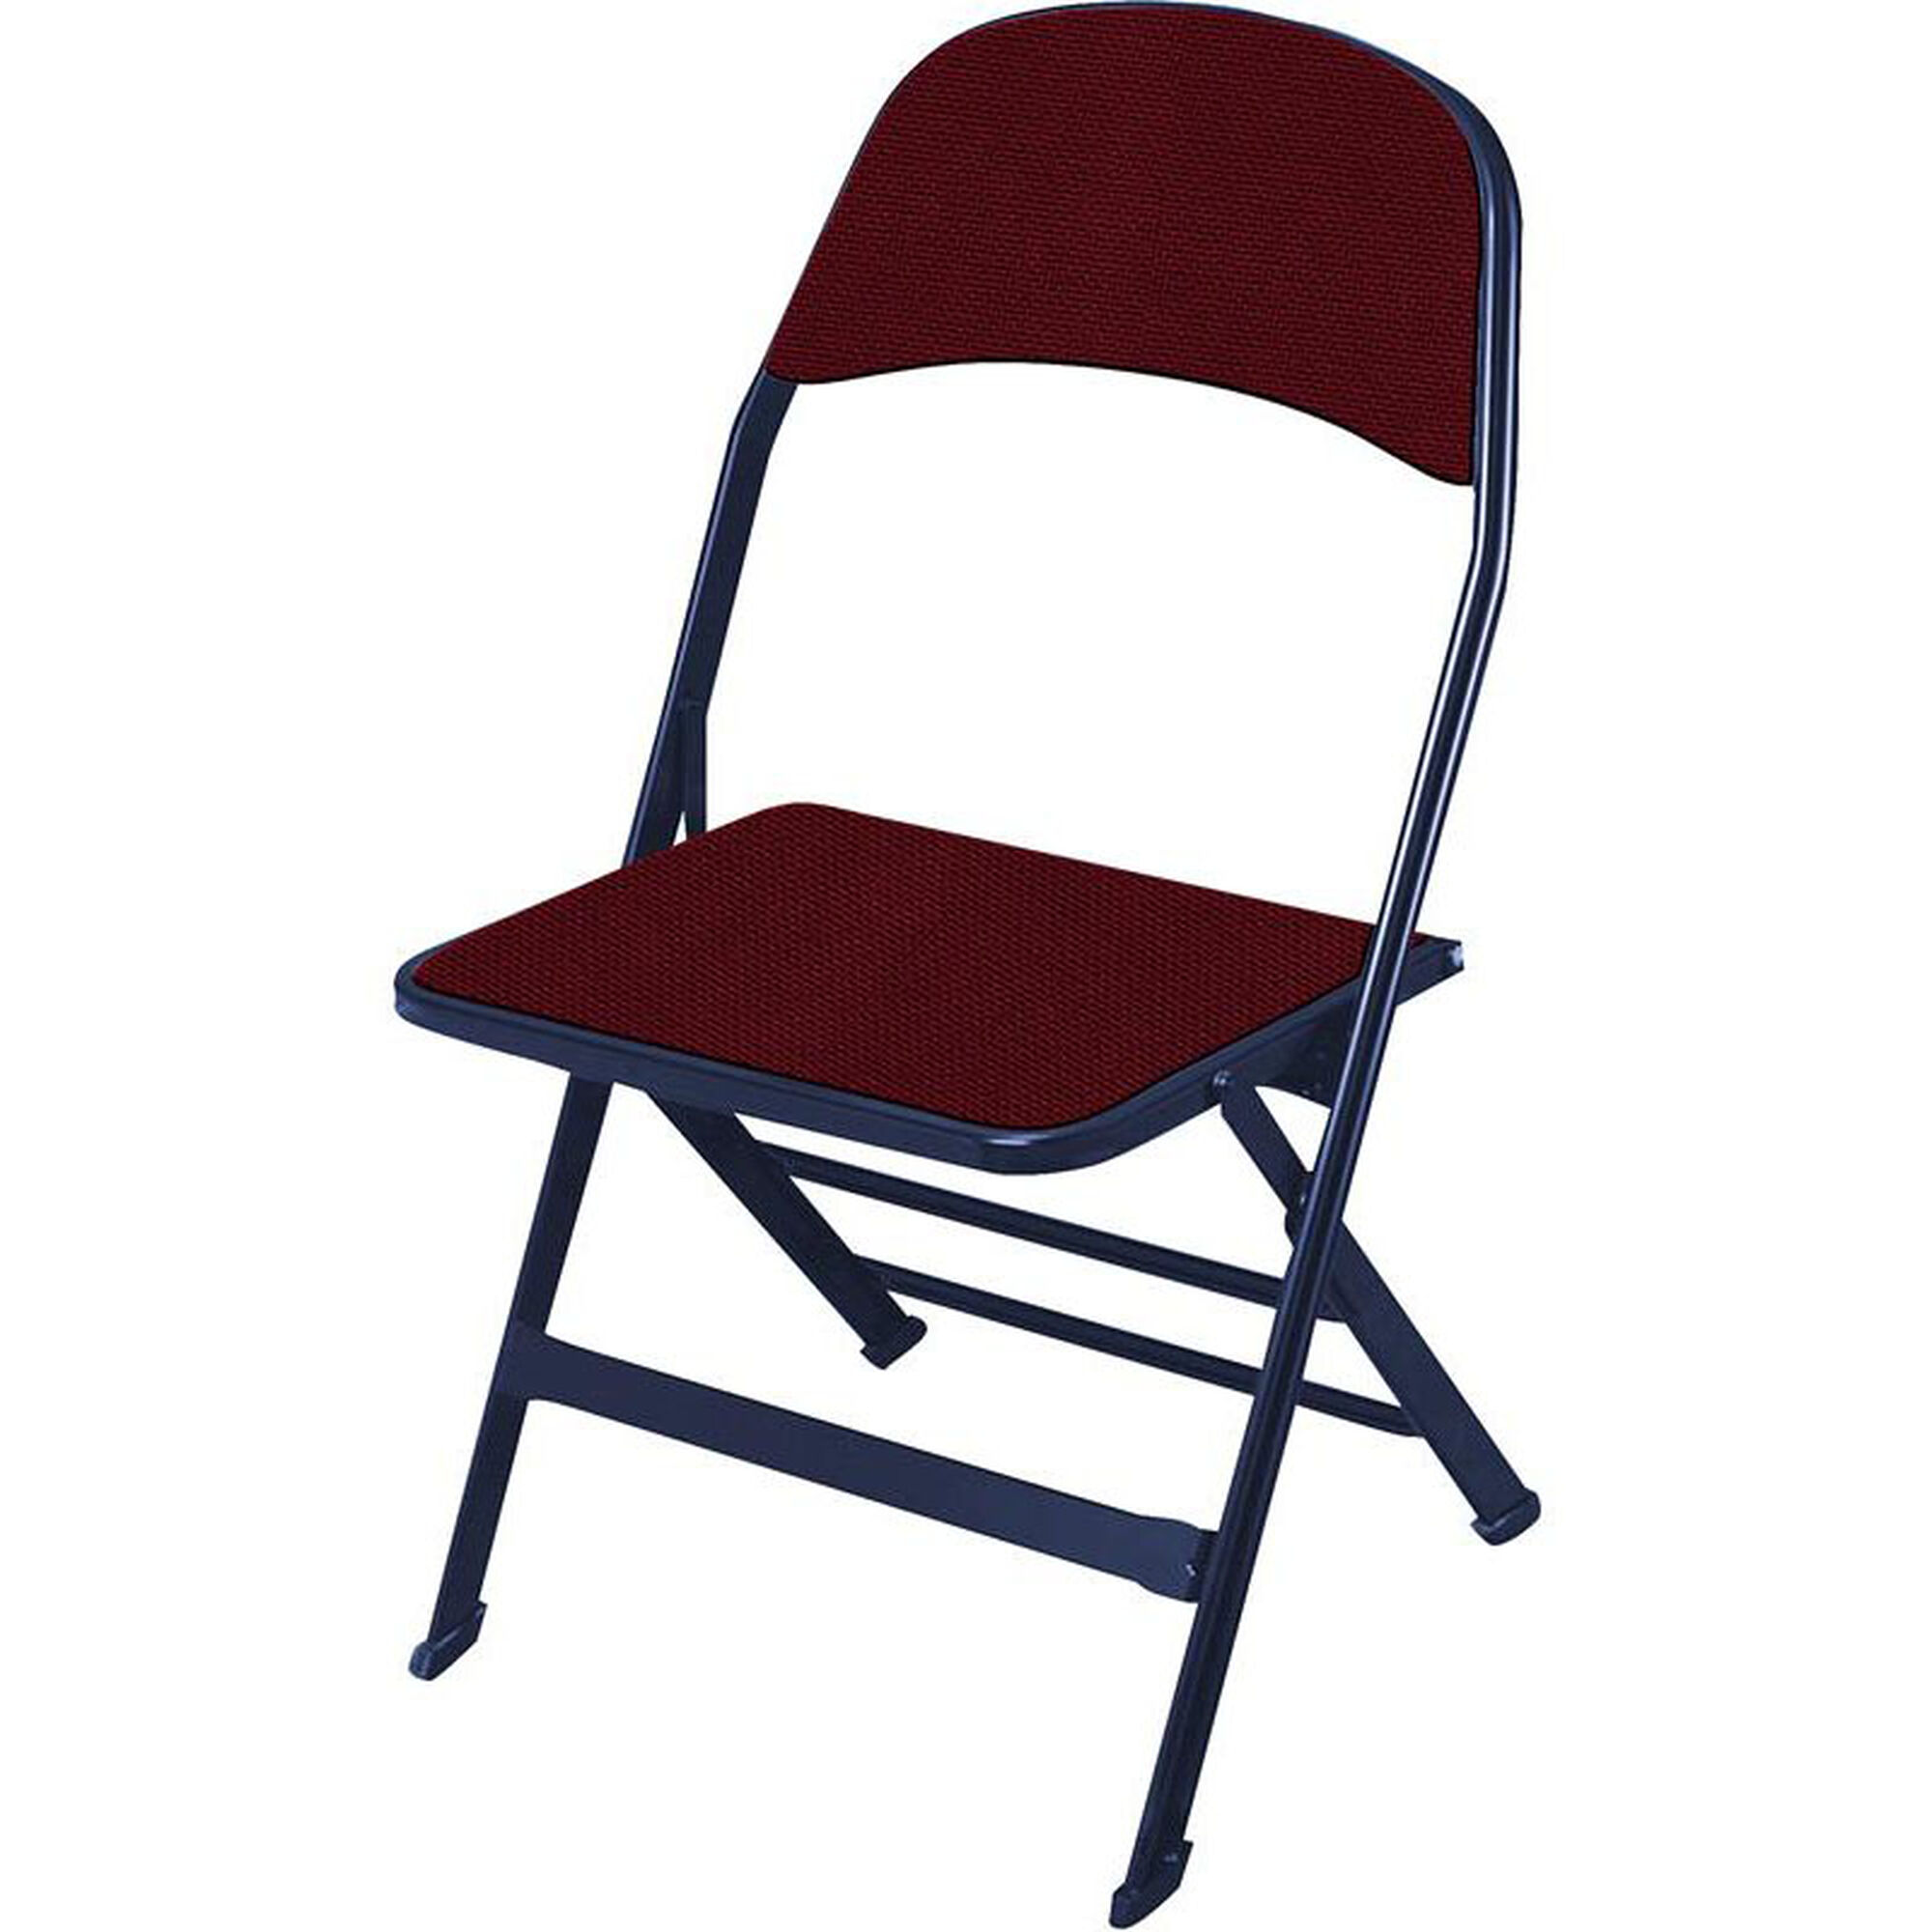 Wondrous 2000 Series Fabric Upholstered Seat And Back Folding Chair With 14 25 Seat Depth Bralicious Painted Fabric Chair Ideas Braliciousco